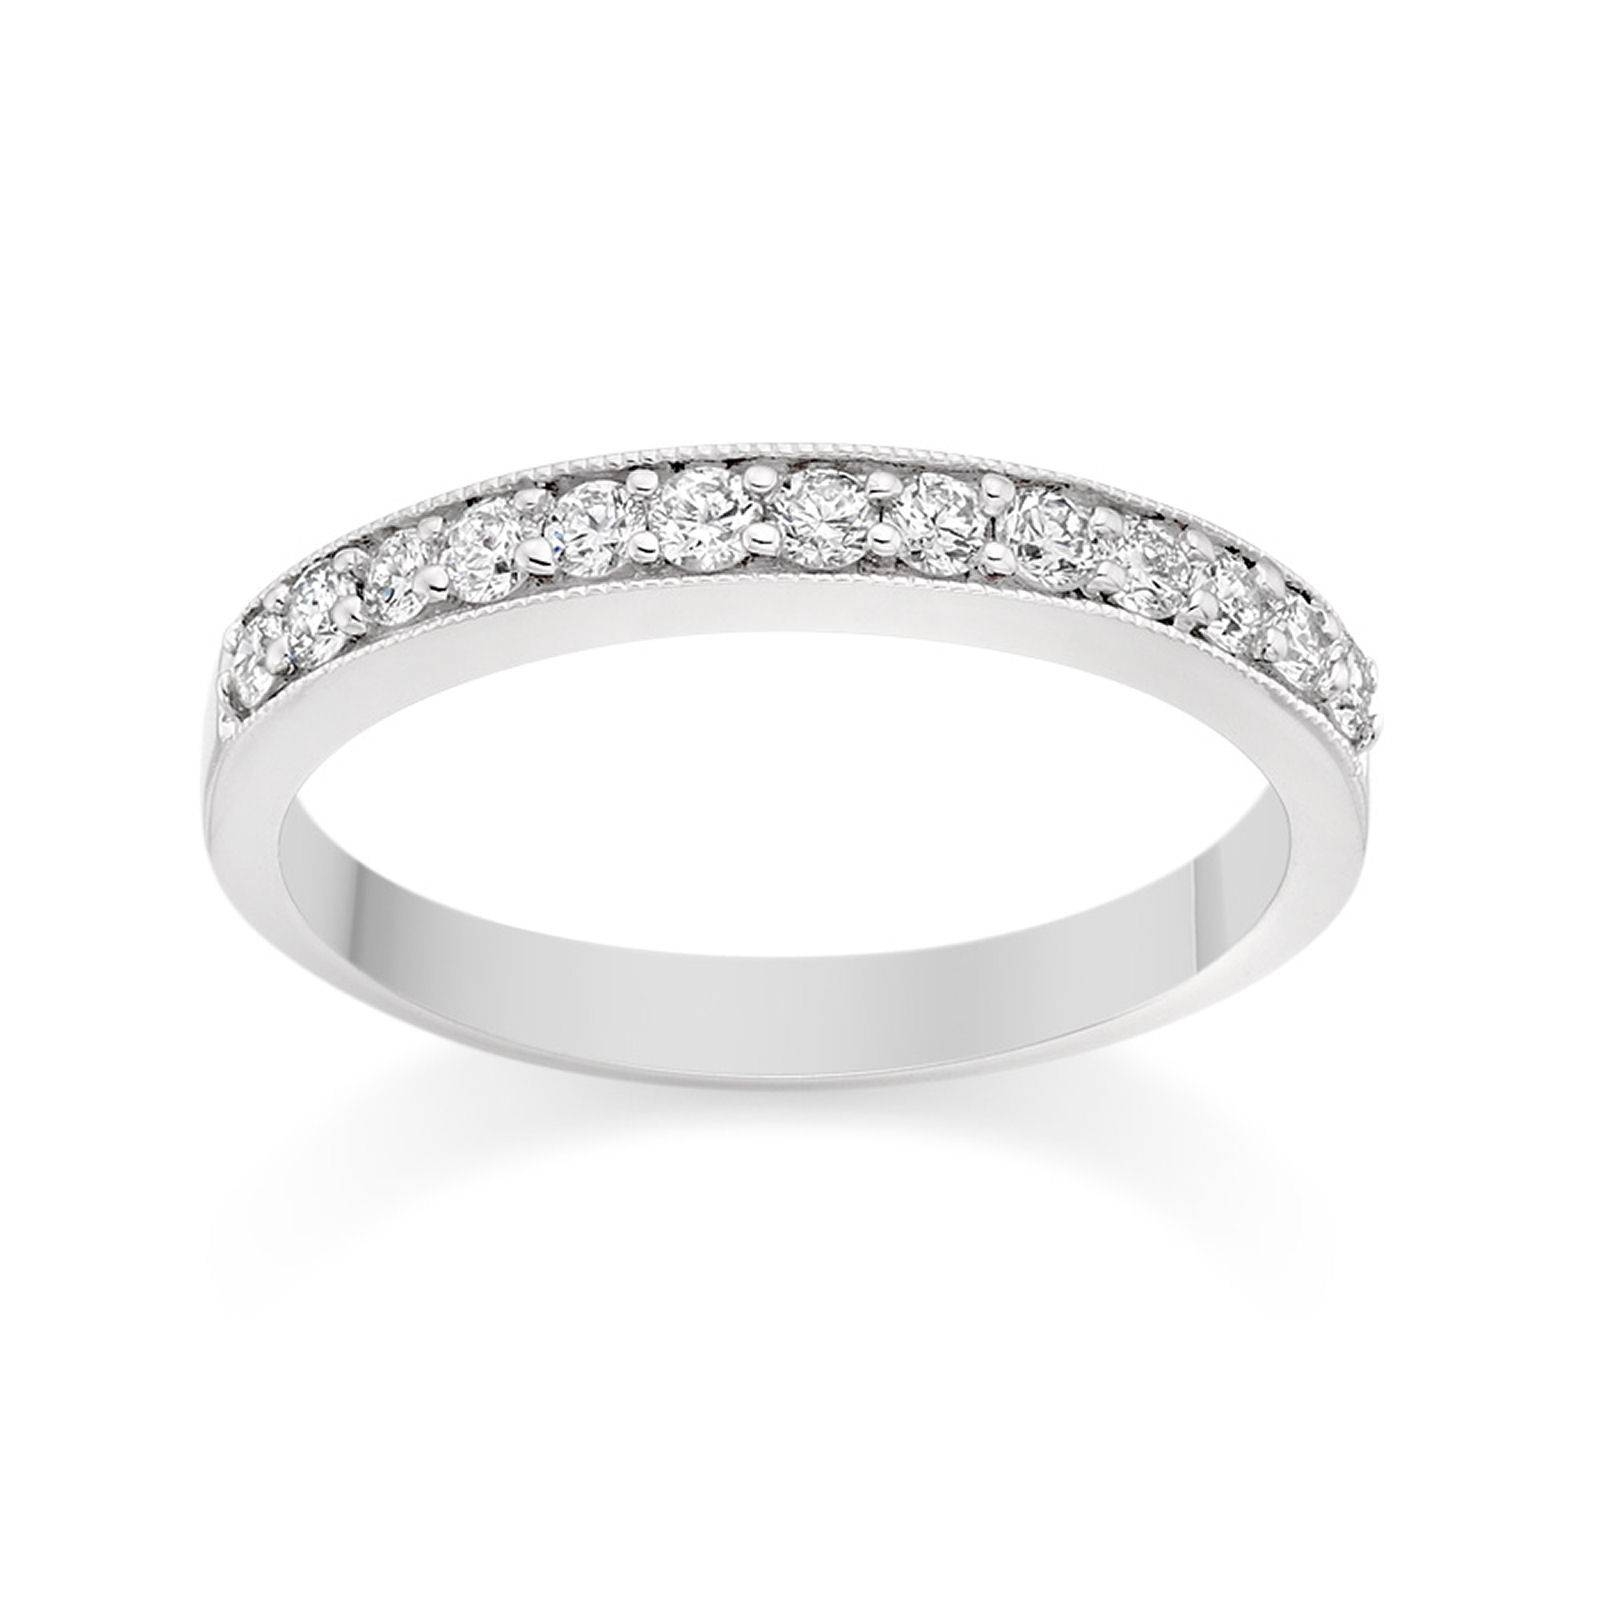 Milgrain Pave Set Diamond Wedding Ring In 18K White Gold Wedding Regarding Most Popular Pave Set Diamond Wedding Bands (View 7 of 15)